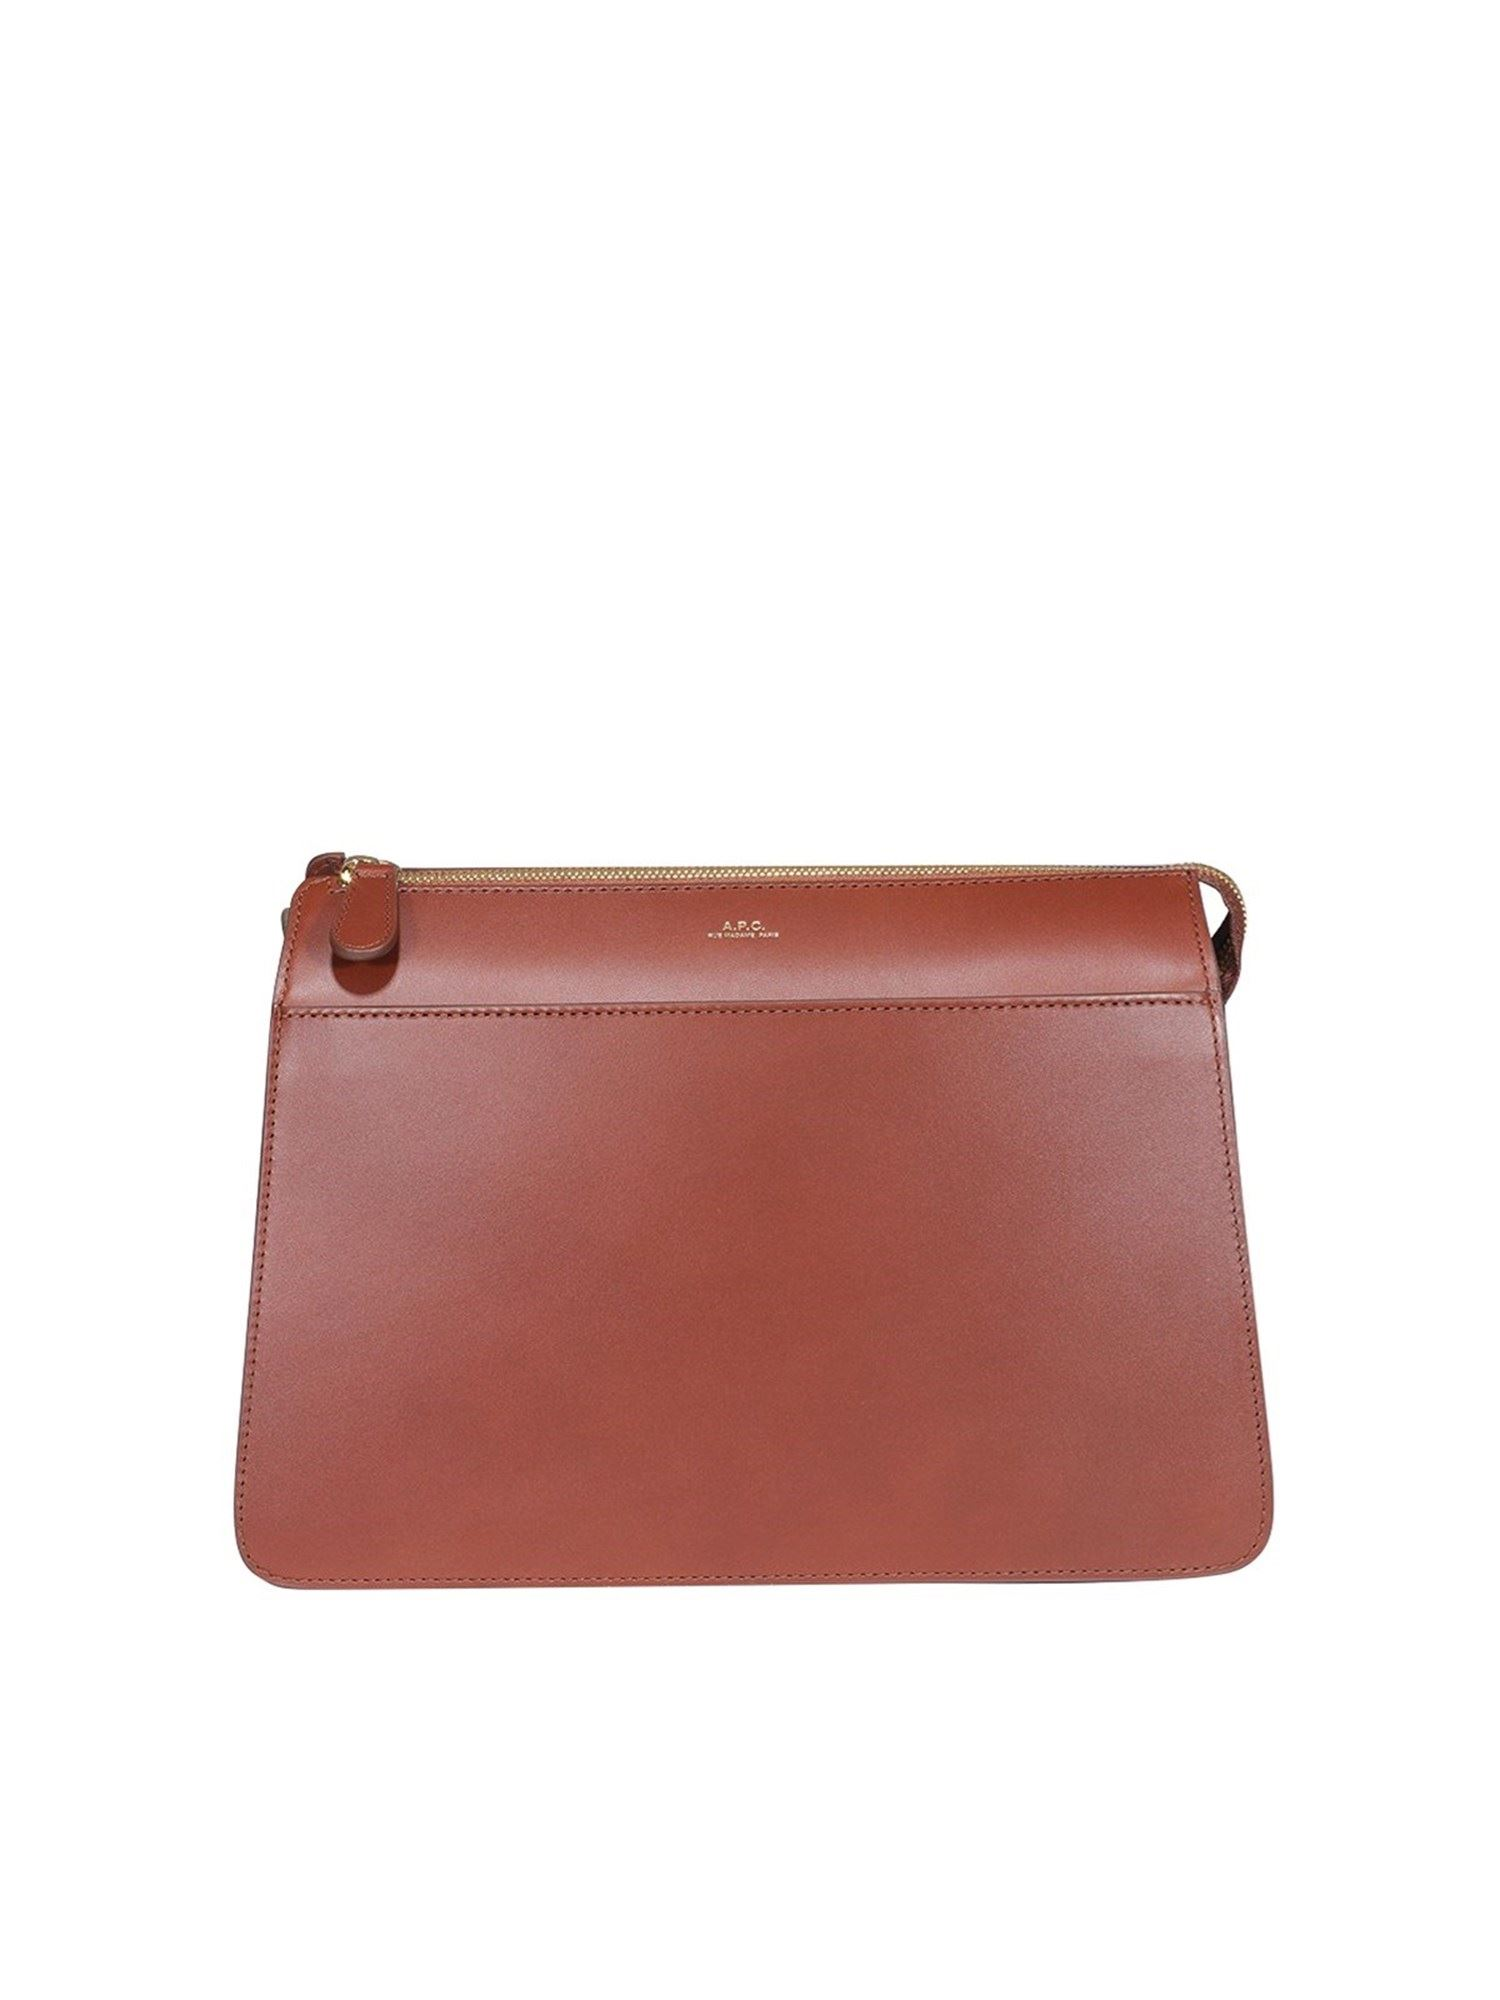 A.p.c. Leathers ELLA LARGE CROSS BODY BAG IN BROWN